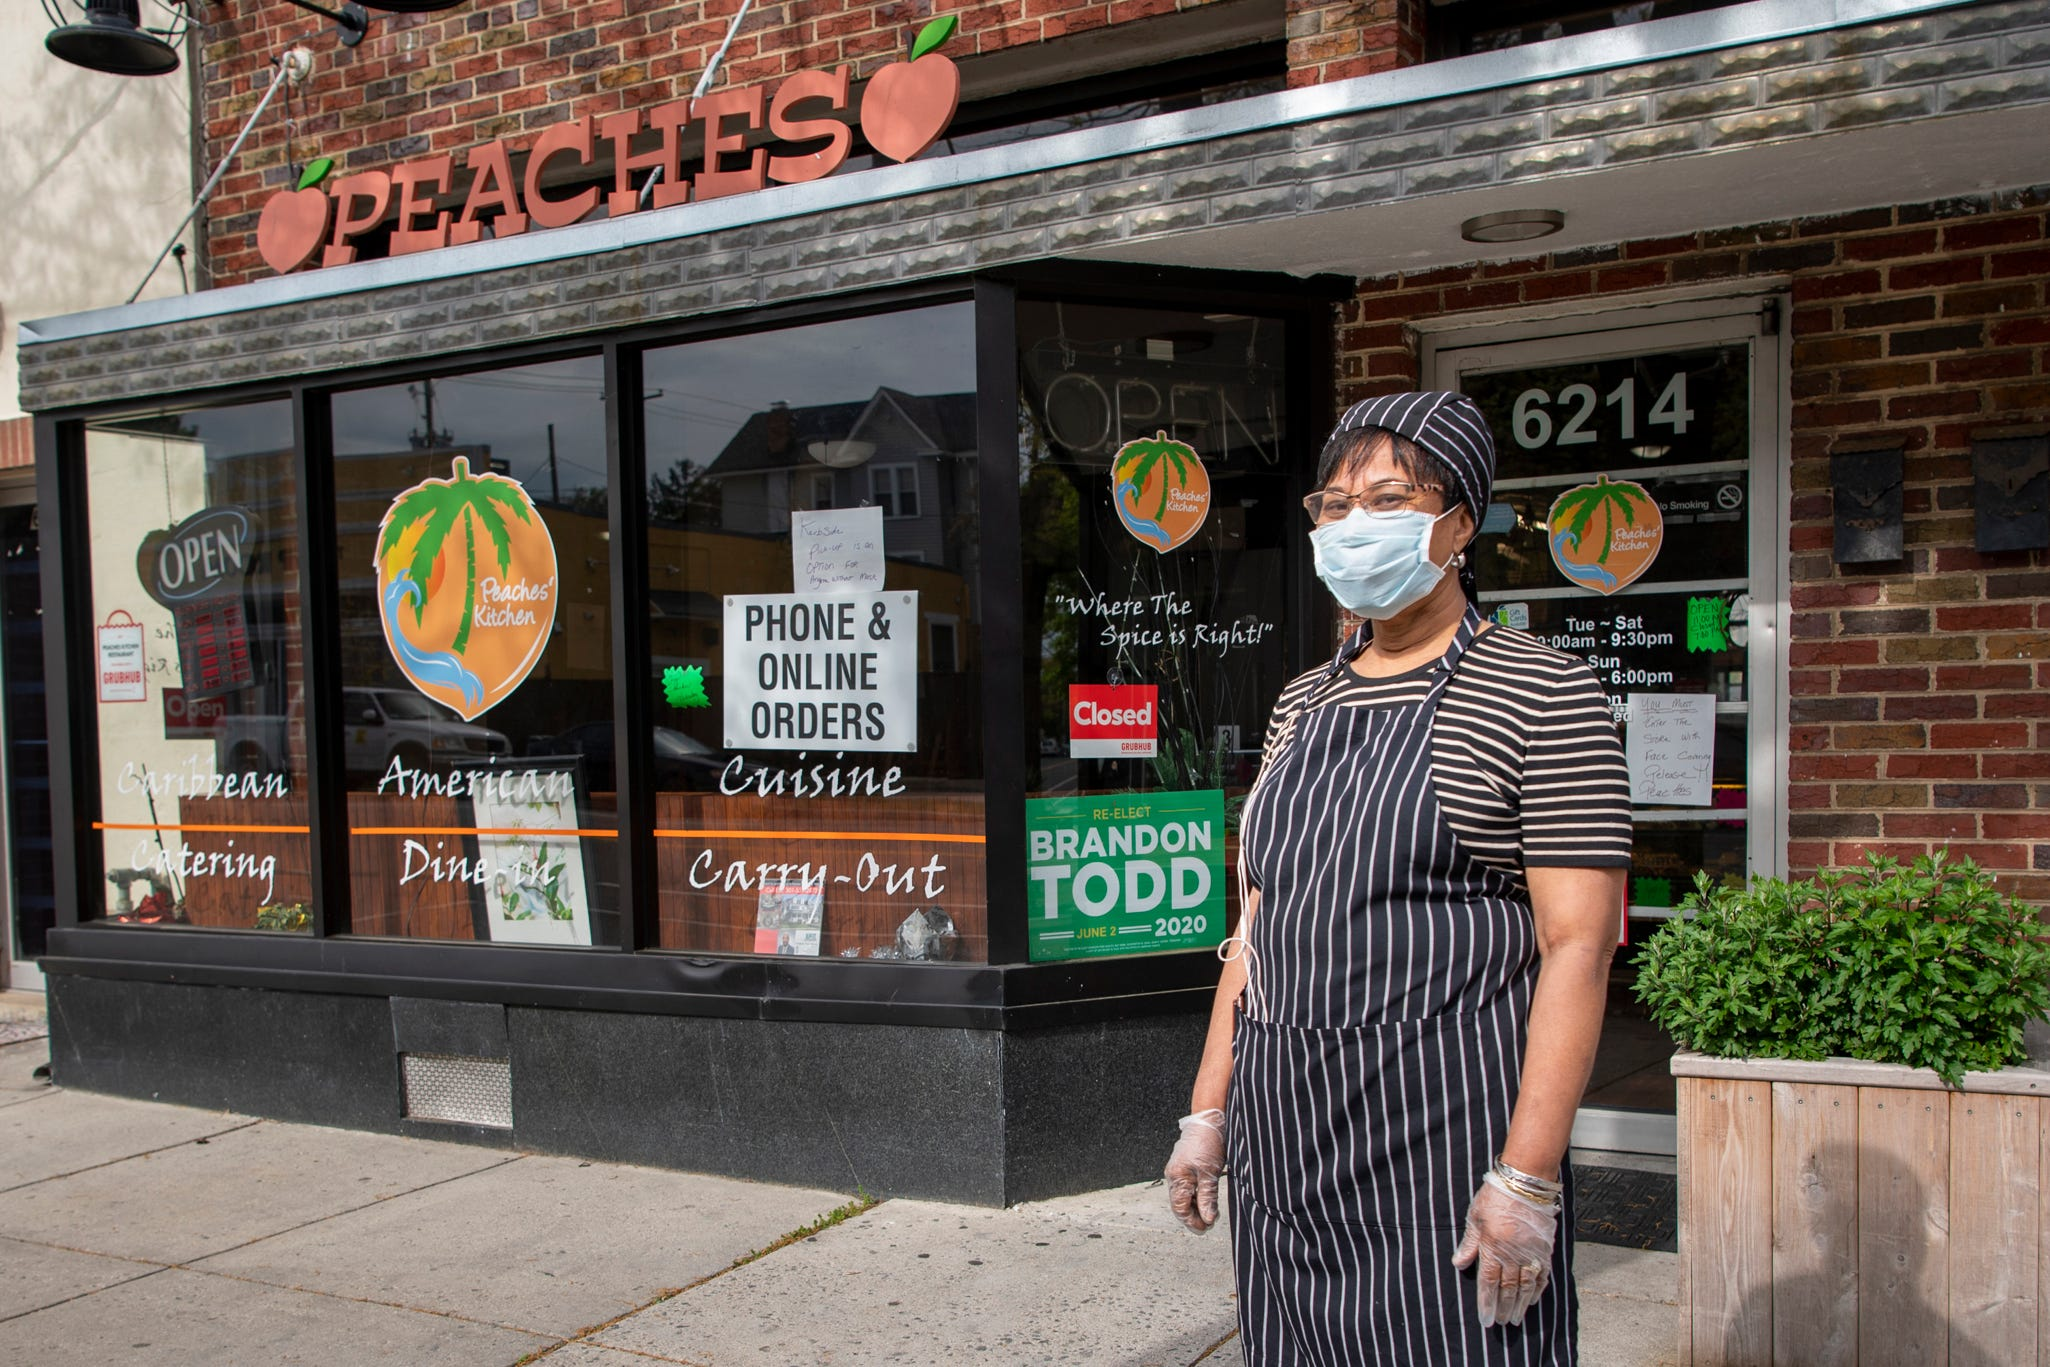 Peaches Watson stands outside Peaches Kitchen Restaurant & Catering Service in Washington, D.C. She said she is struggling to keep her business open amid the coronavirus shutdowns.